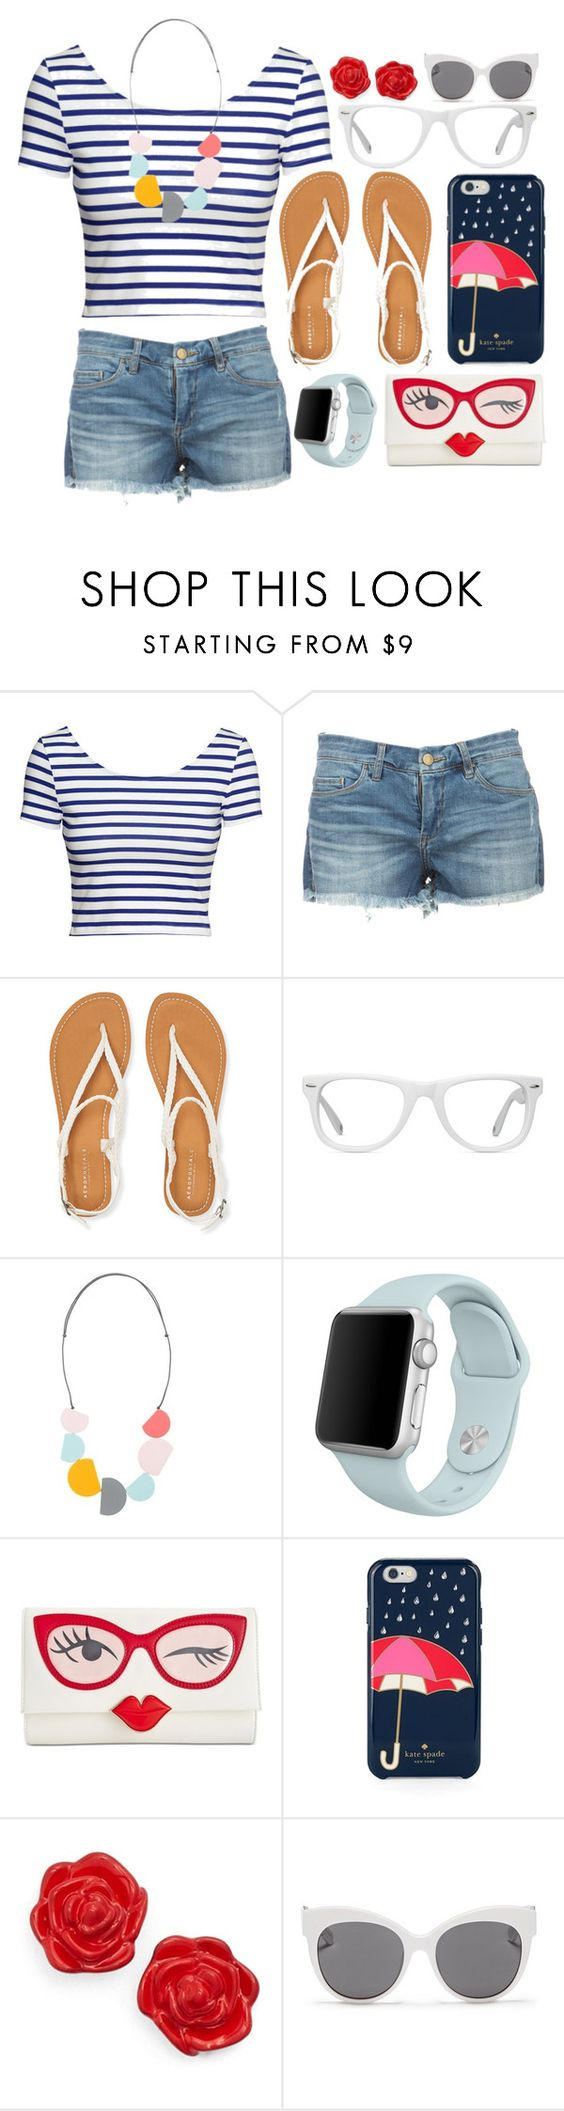 """""""Random Look #1"""" by rosabelle959 ❤ liked on Polyvore featuring H&M, Aéropostale, Muse, Kate Spade and Blanc & Eclare"""